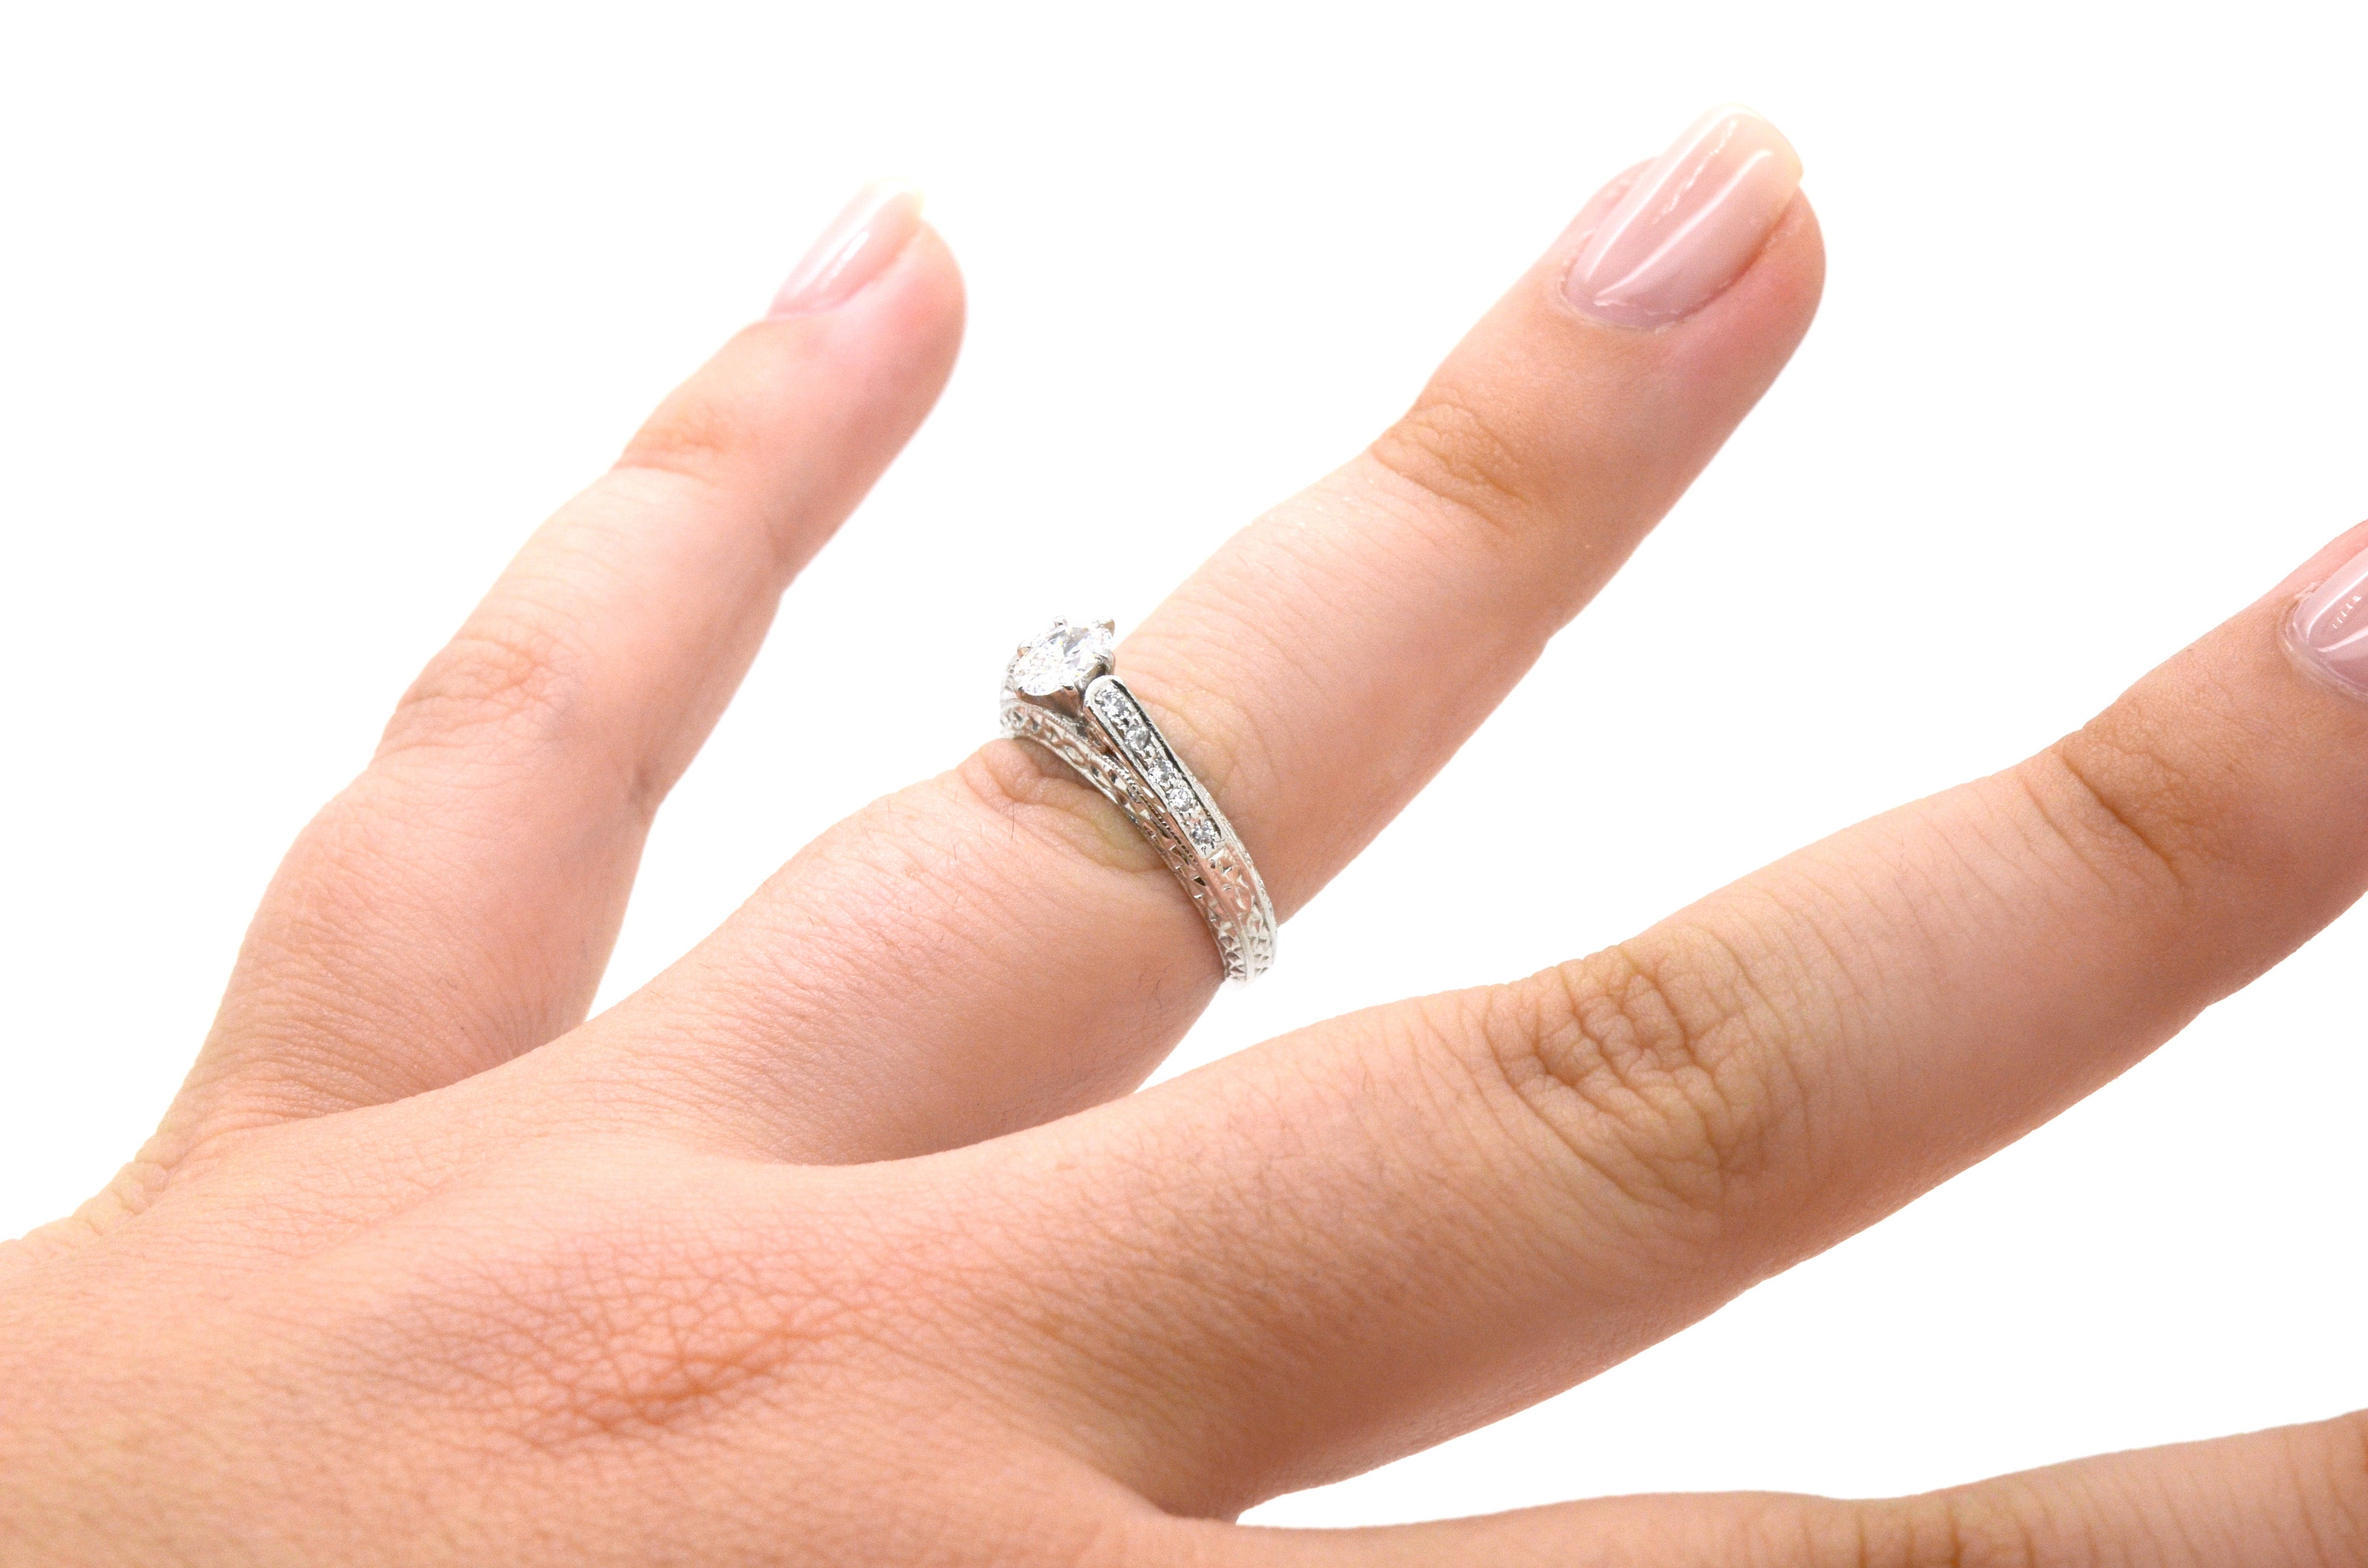 Platinum Oval Shaped Diamond Engagement Ring - .55 ct. total - Size 5.25